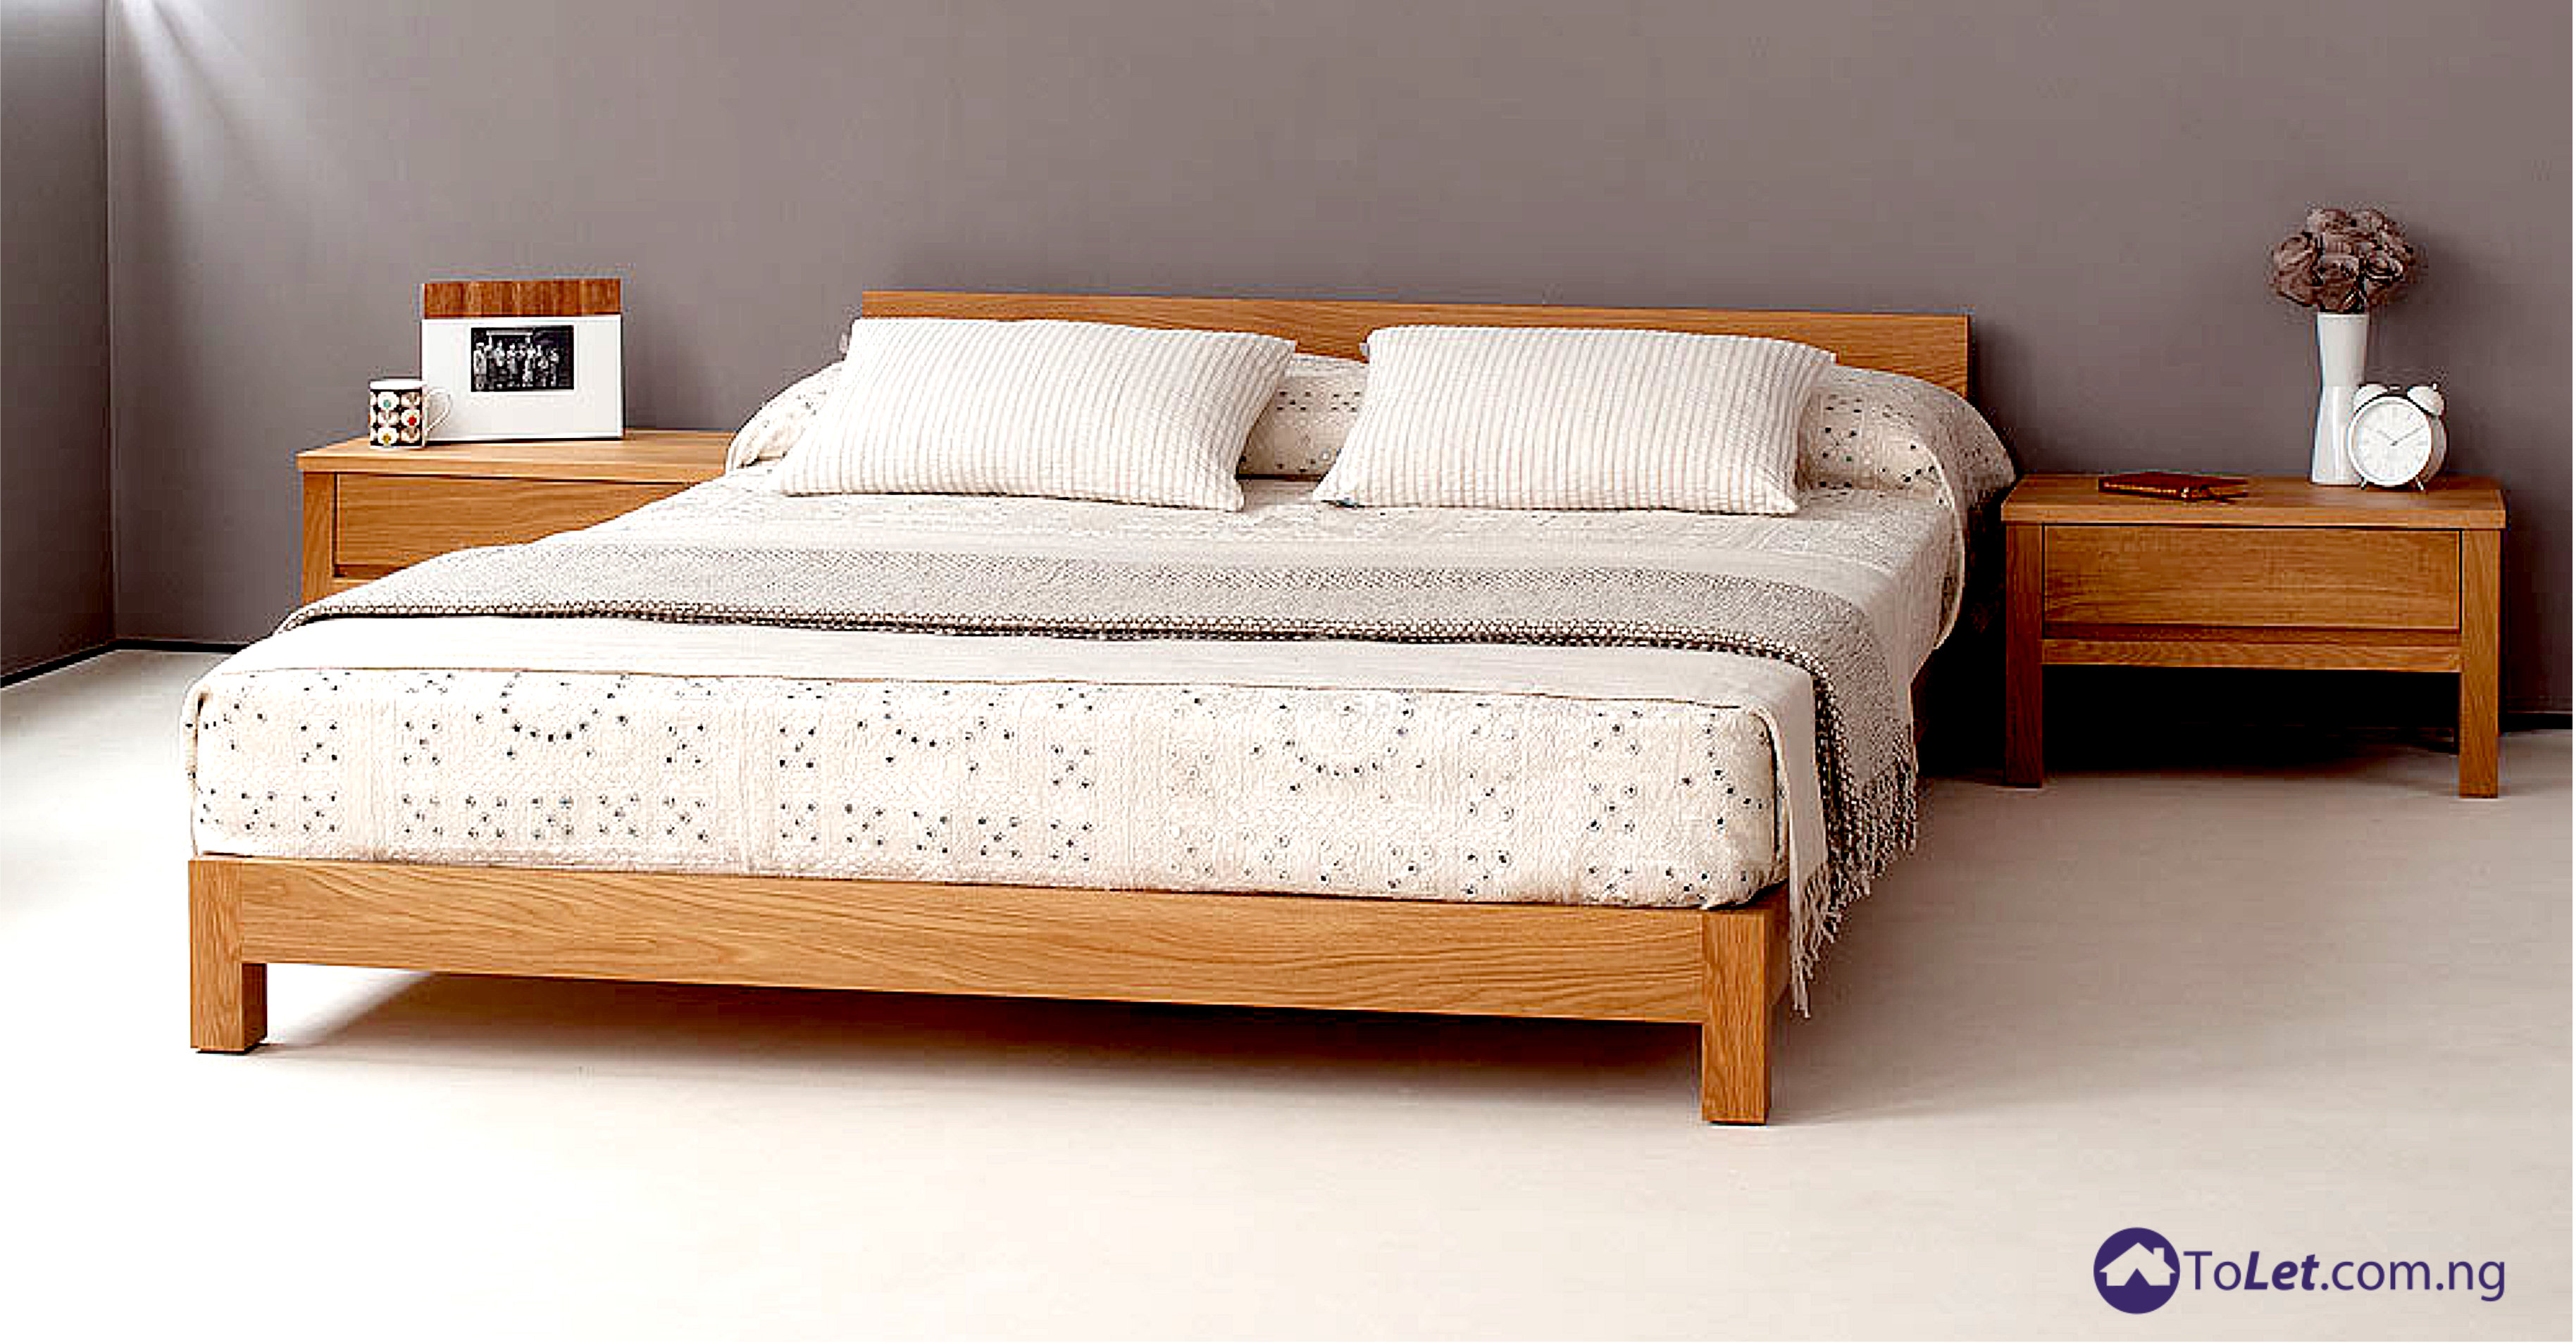 Bed frame types 28 images different types of beds Types of king beds